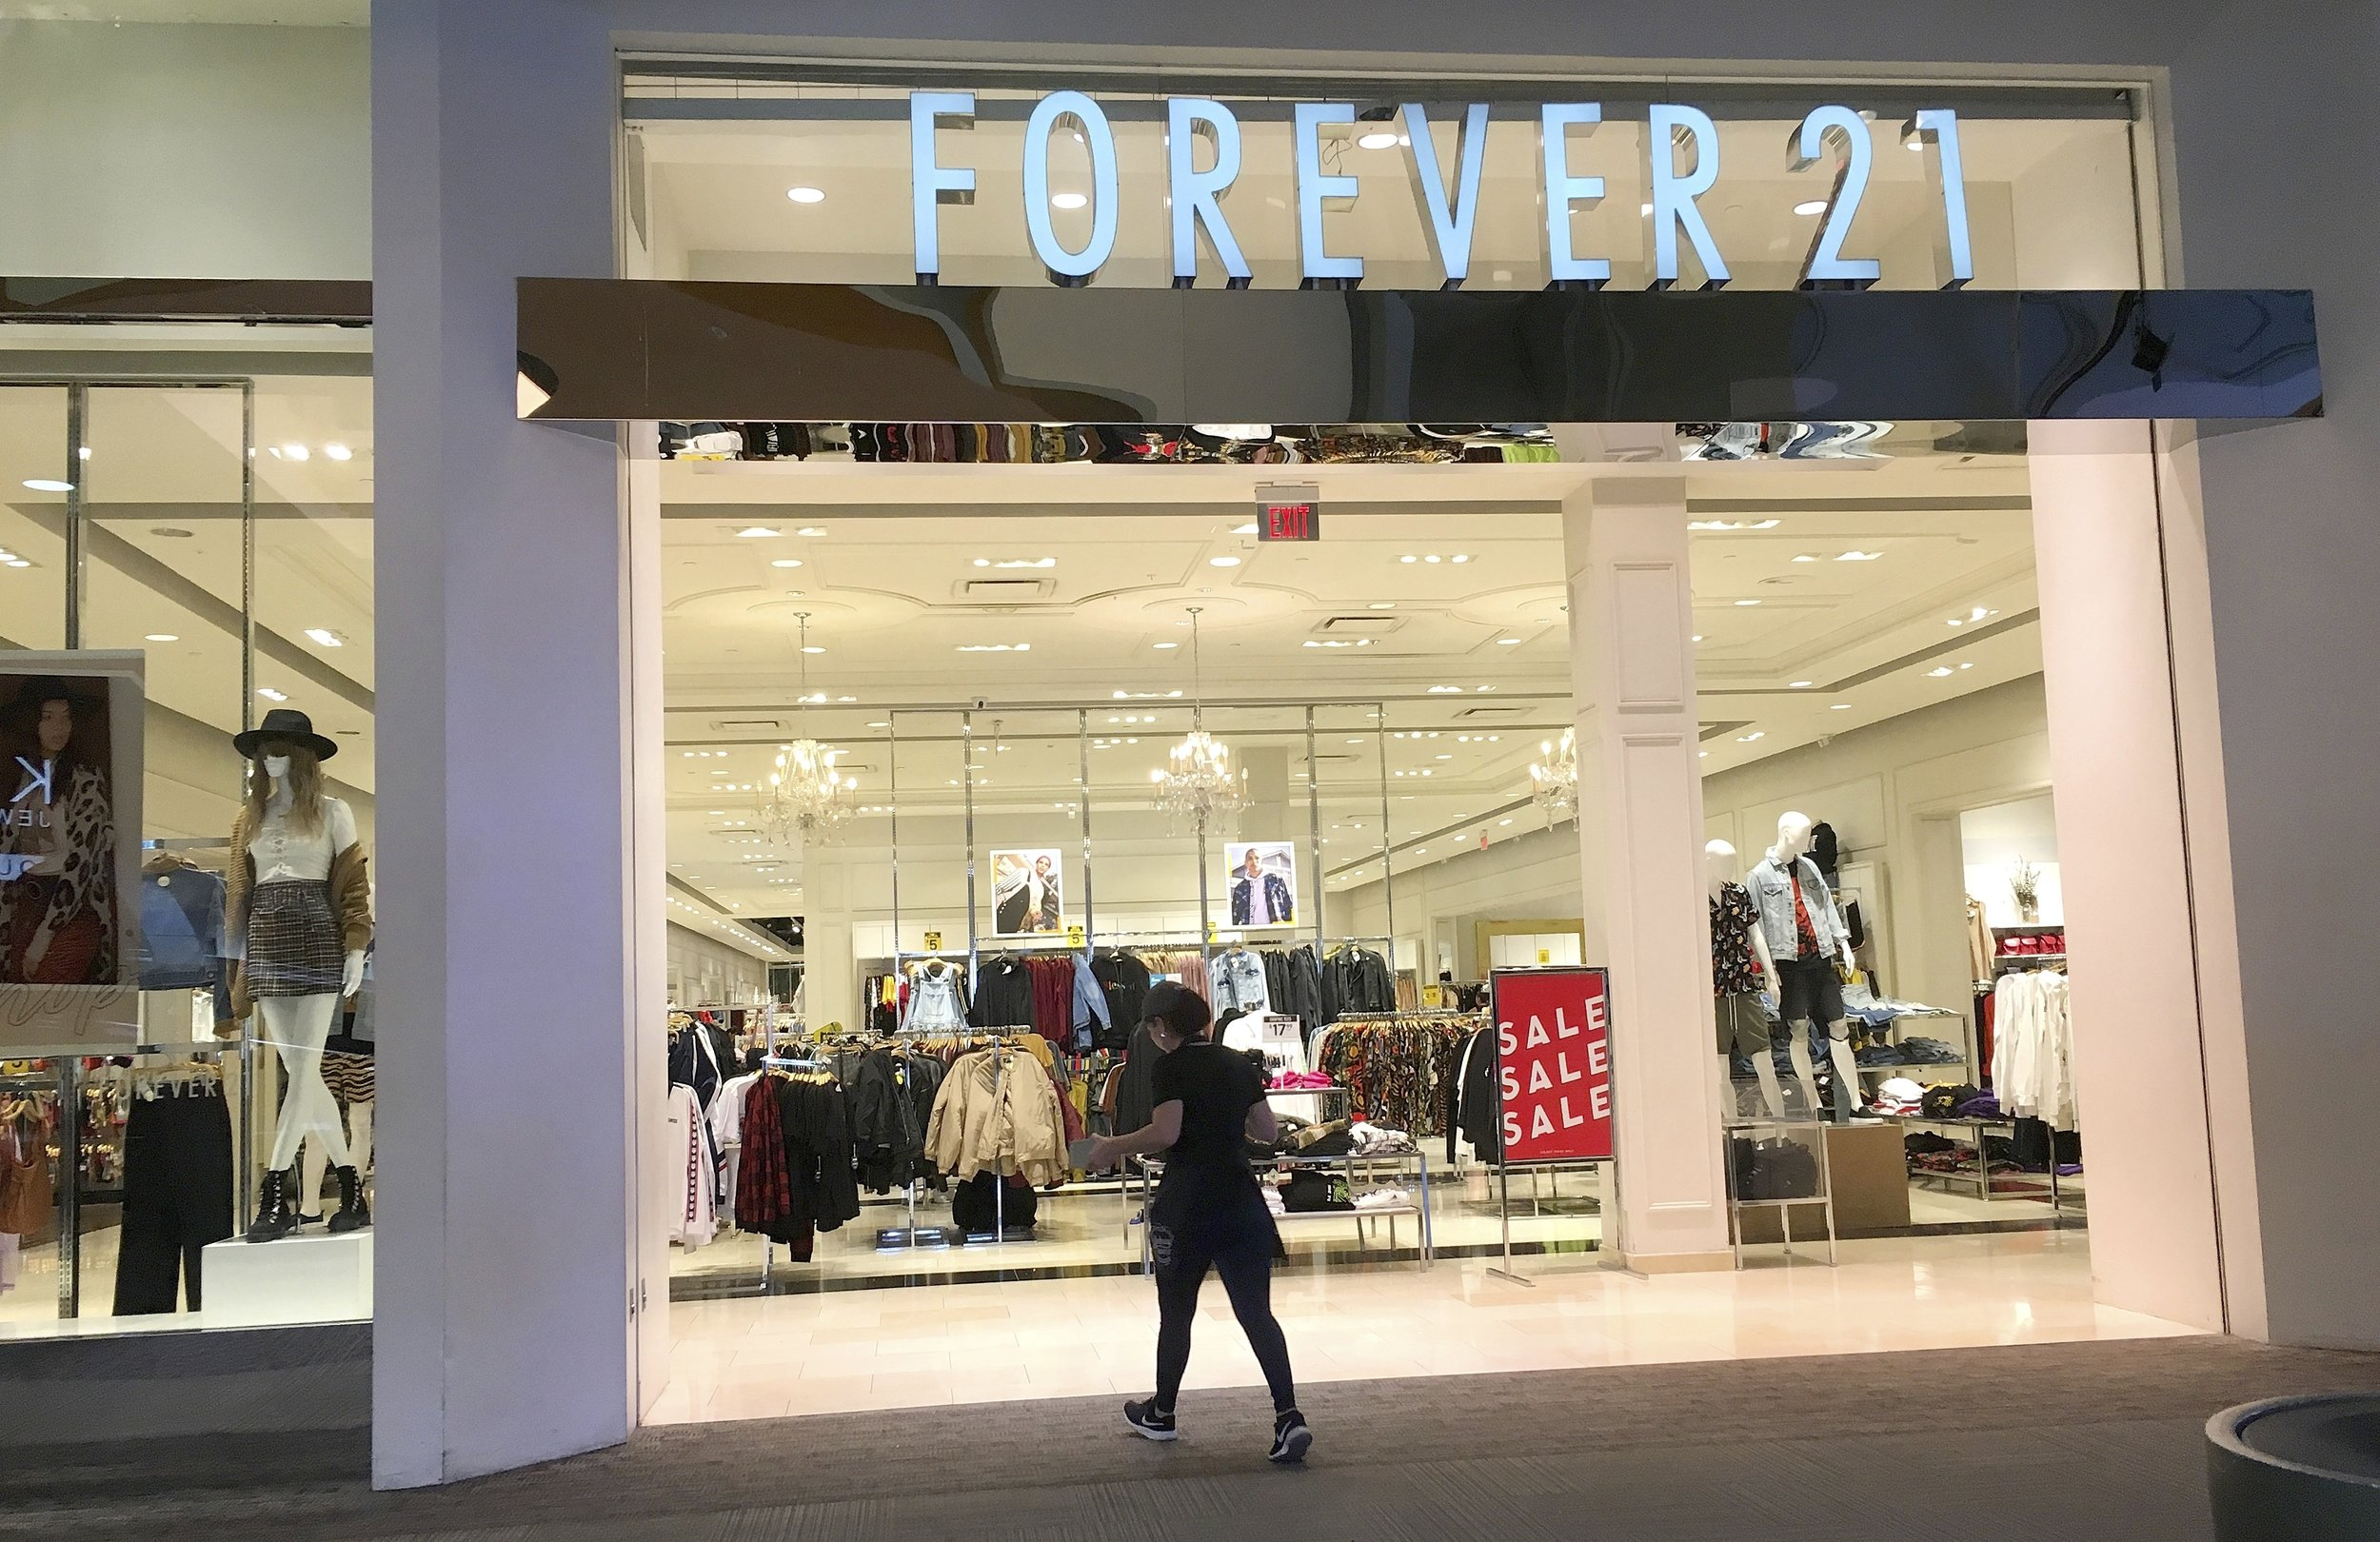 Forever 21 is one of the major companies guilty of fast fashion, a high volume/low price model used to turn out trendy clothes for instant consumption and usually near-instant dumpster habitation. While economic, it has serious repercussions on the environment . Photo courtesy of Ross D. Franklin/The Associated Press